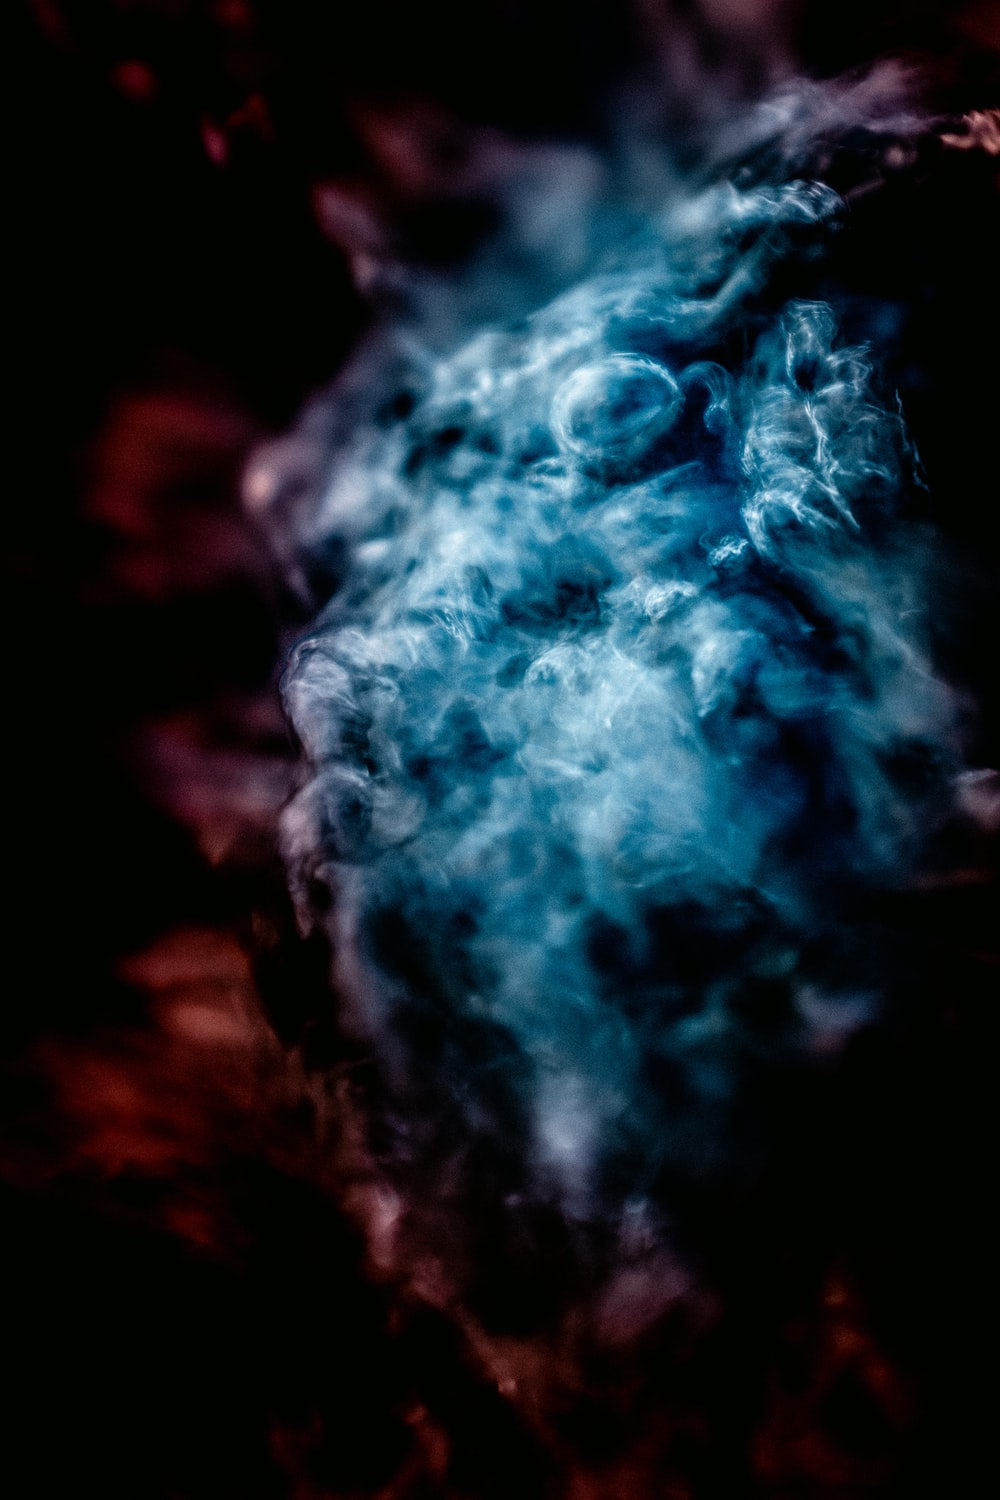 white and blue smoke in close up photography